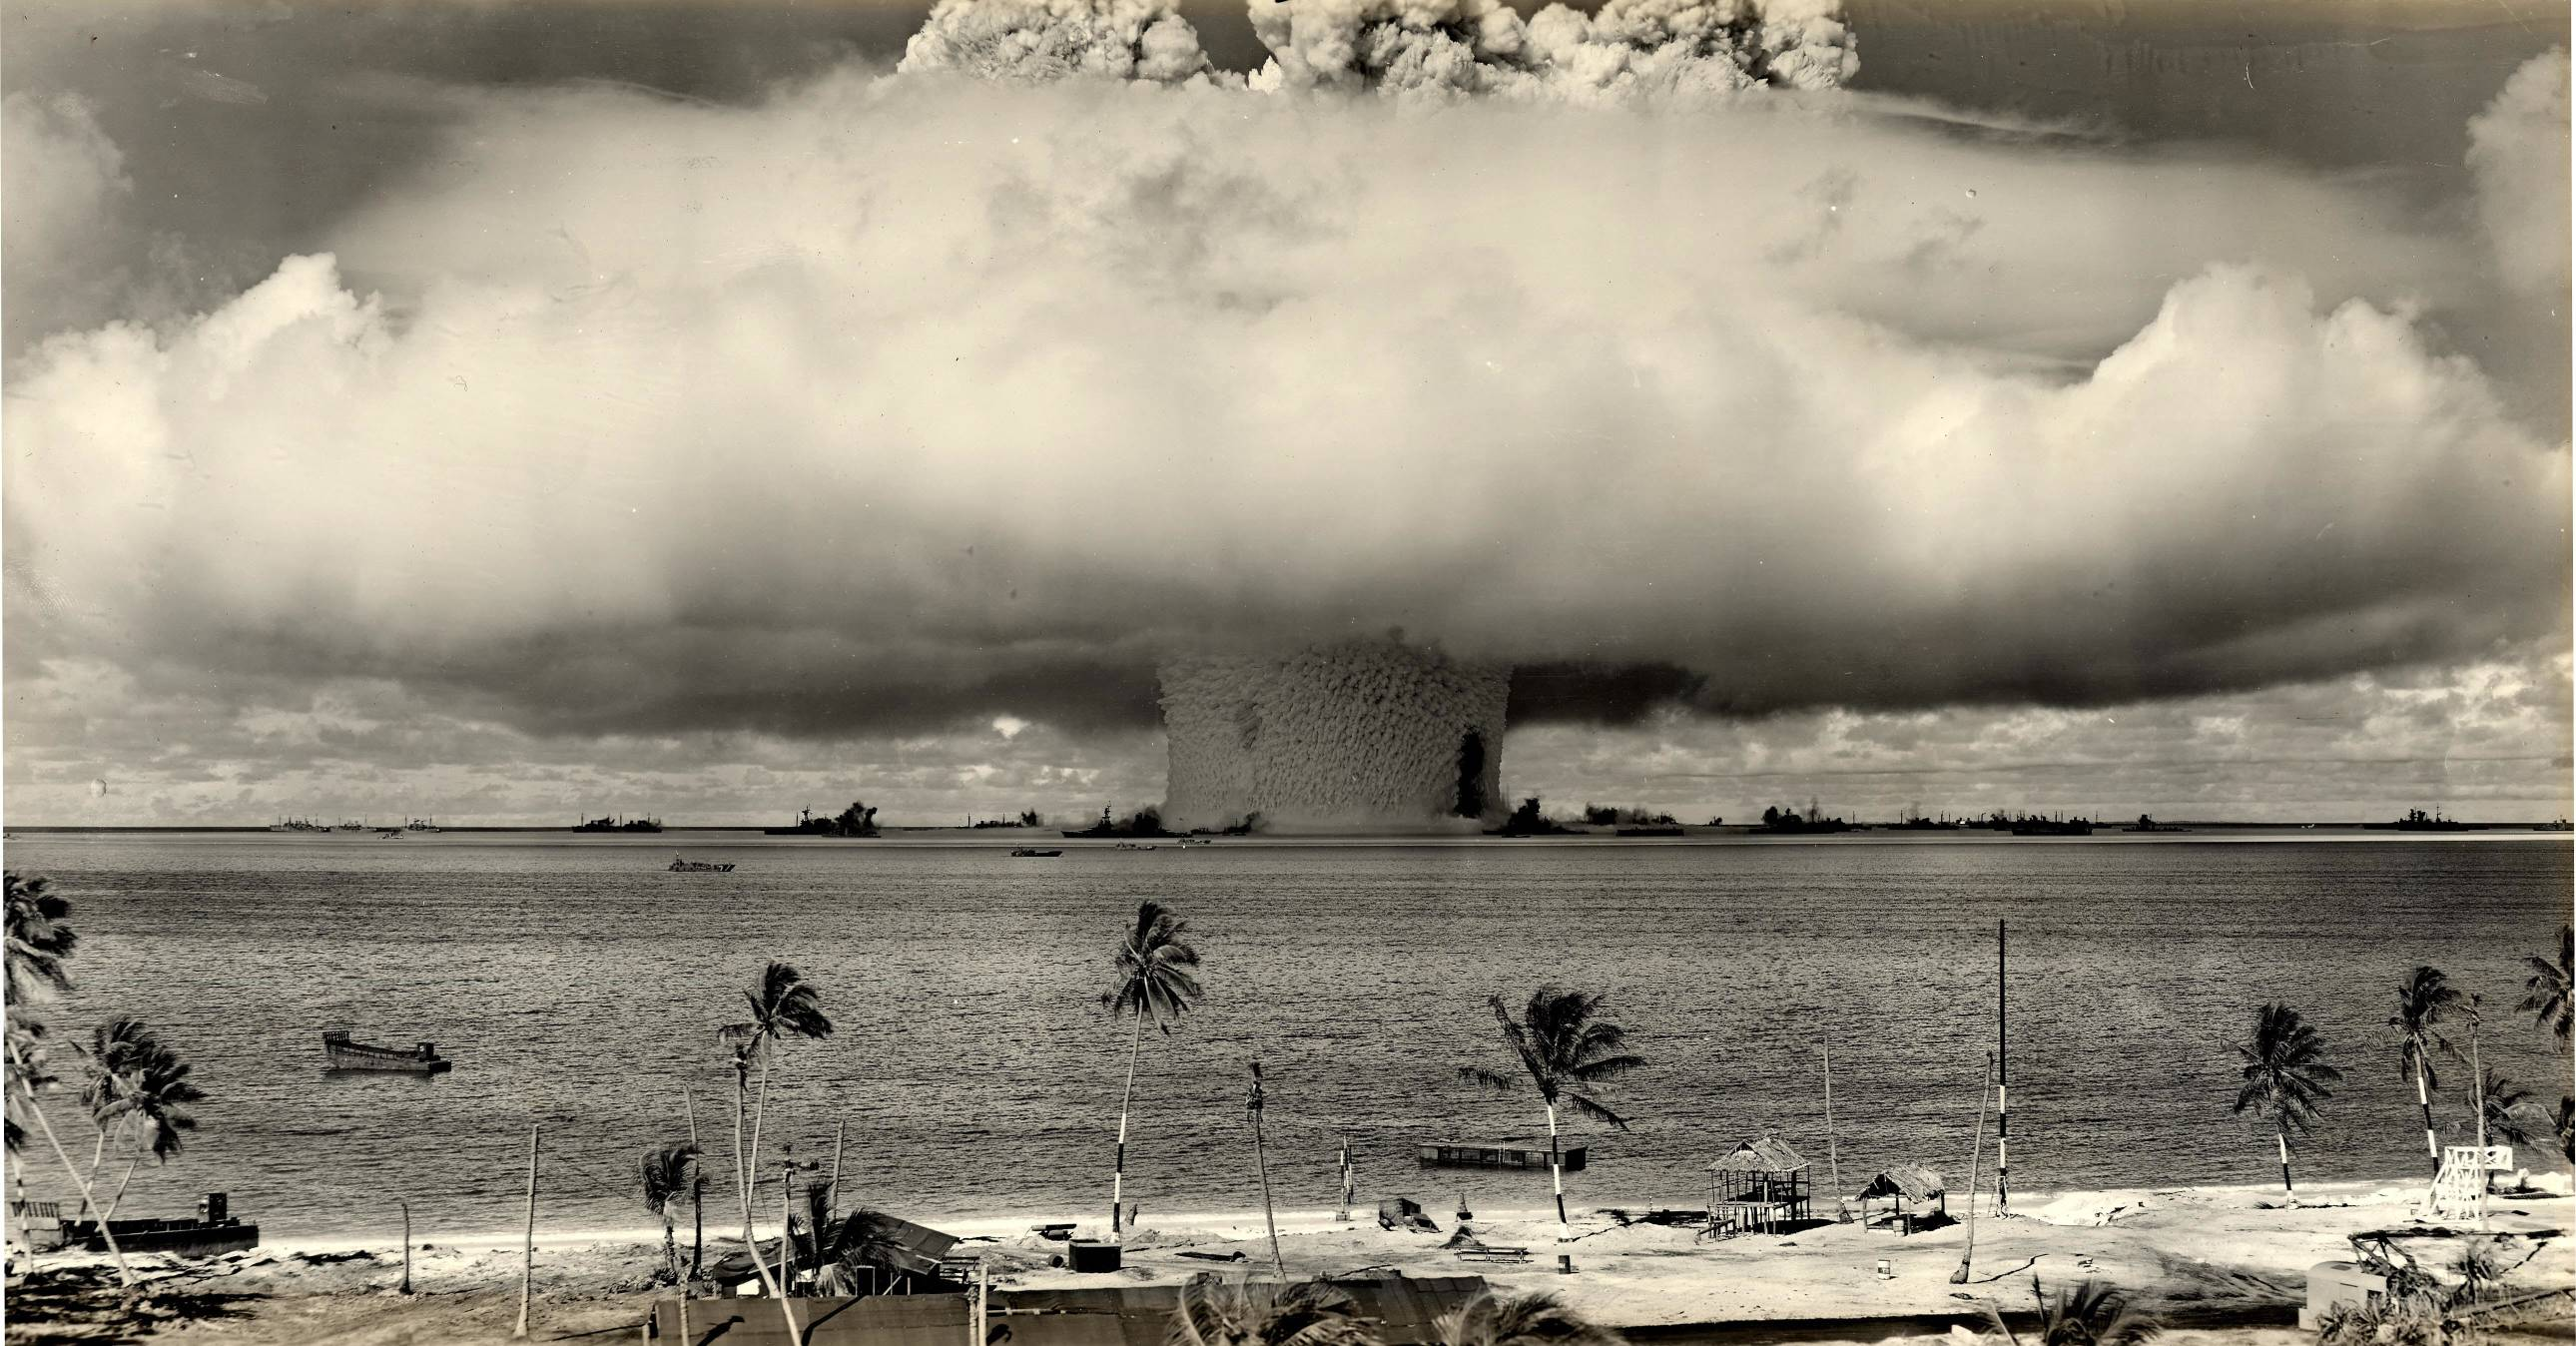 Nuclear Explosion Wallpaper 2580x1348